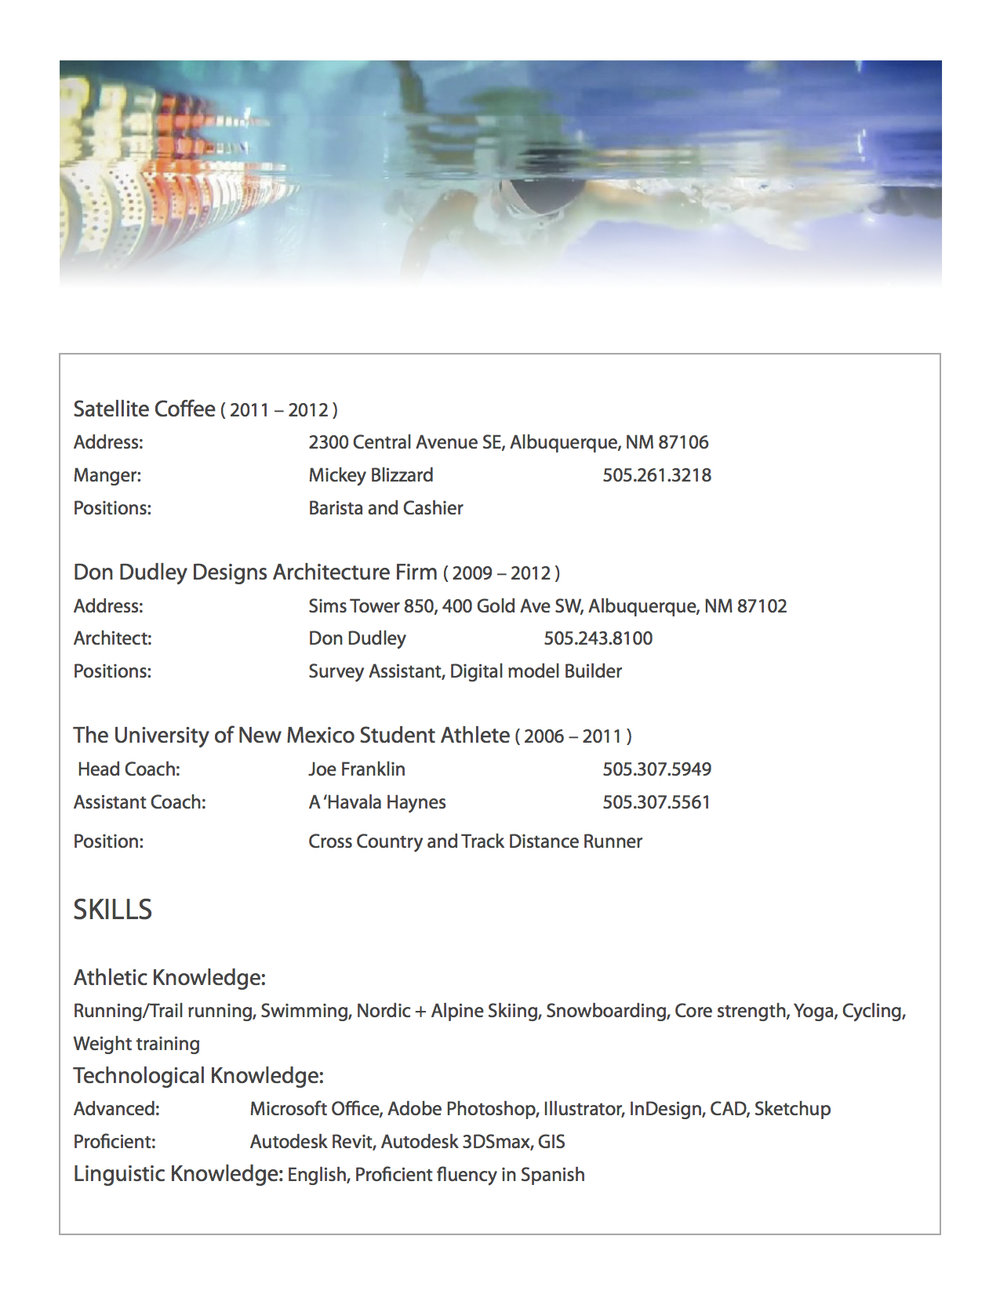 Alex Willis athletic resume october 2016 page 4.jpg